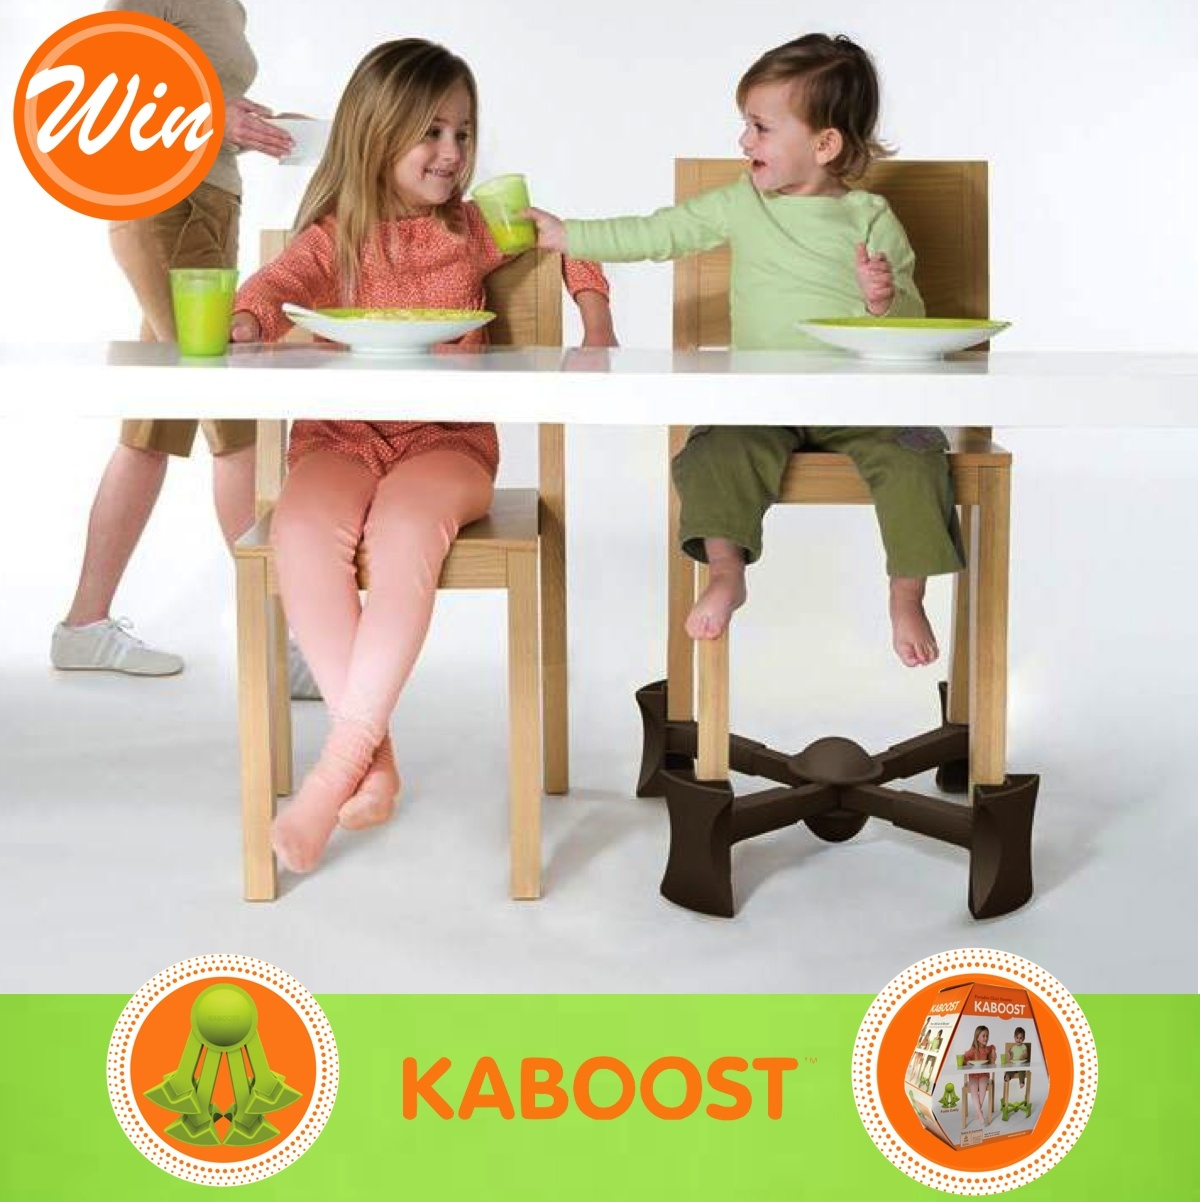 Go Ask Mum Win 1 Of 2 Kaboost Portable Chair Boosters Go